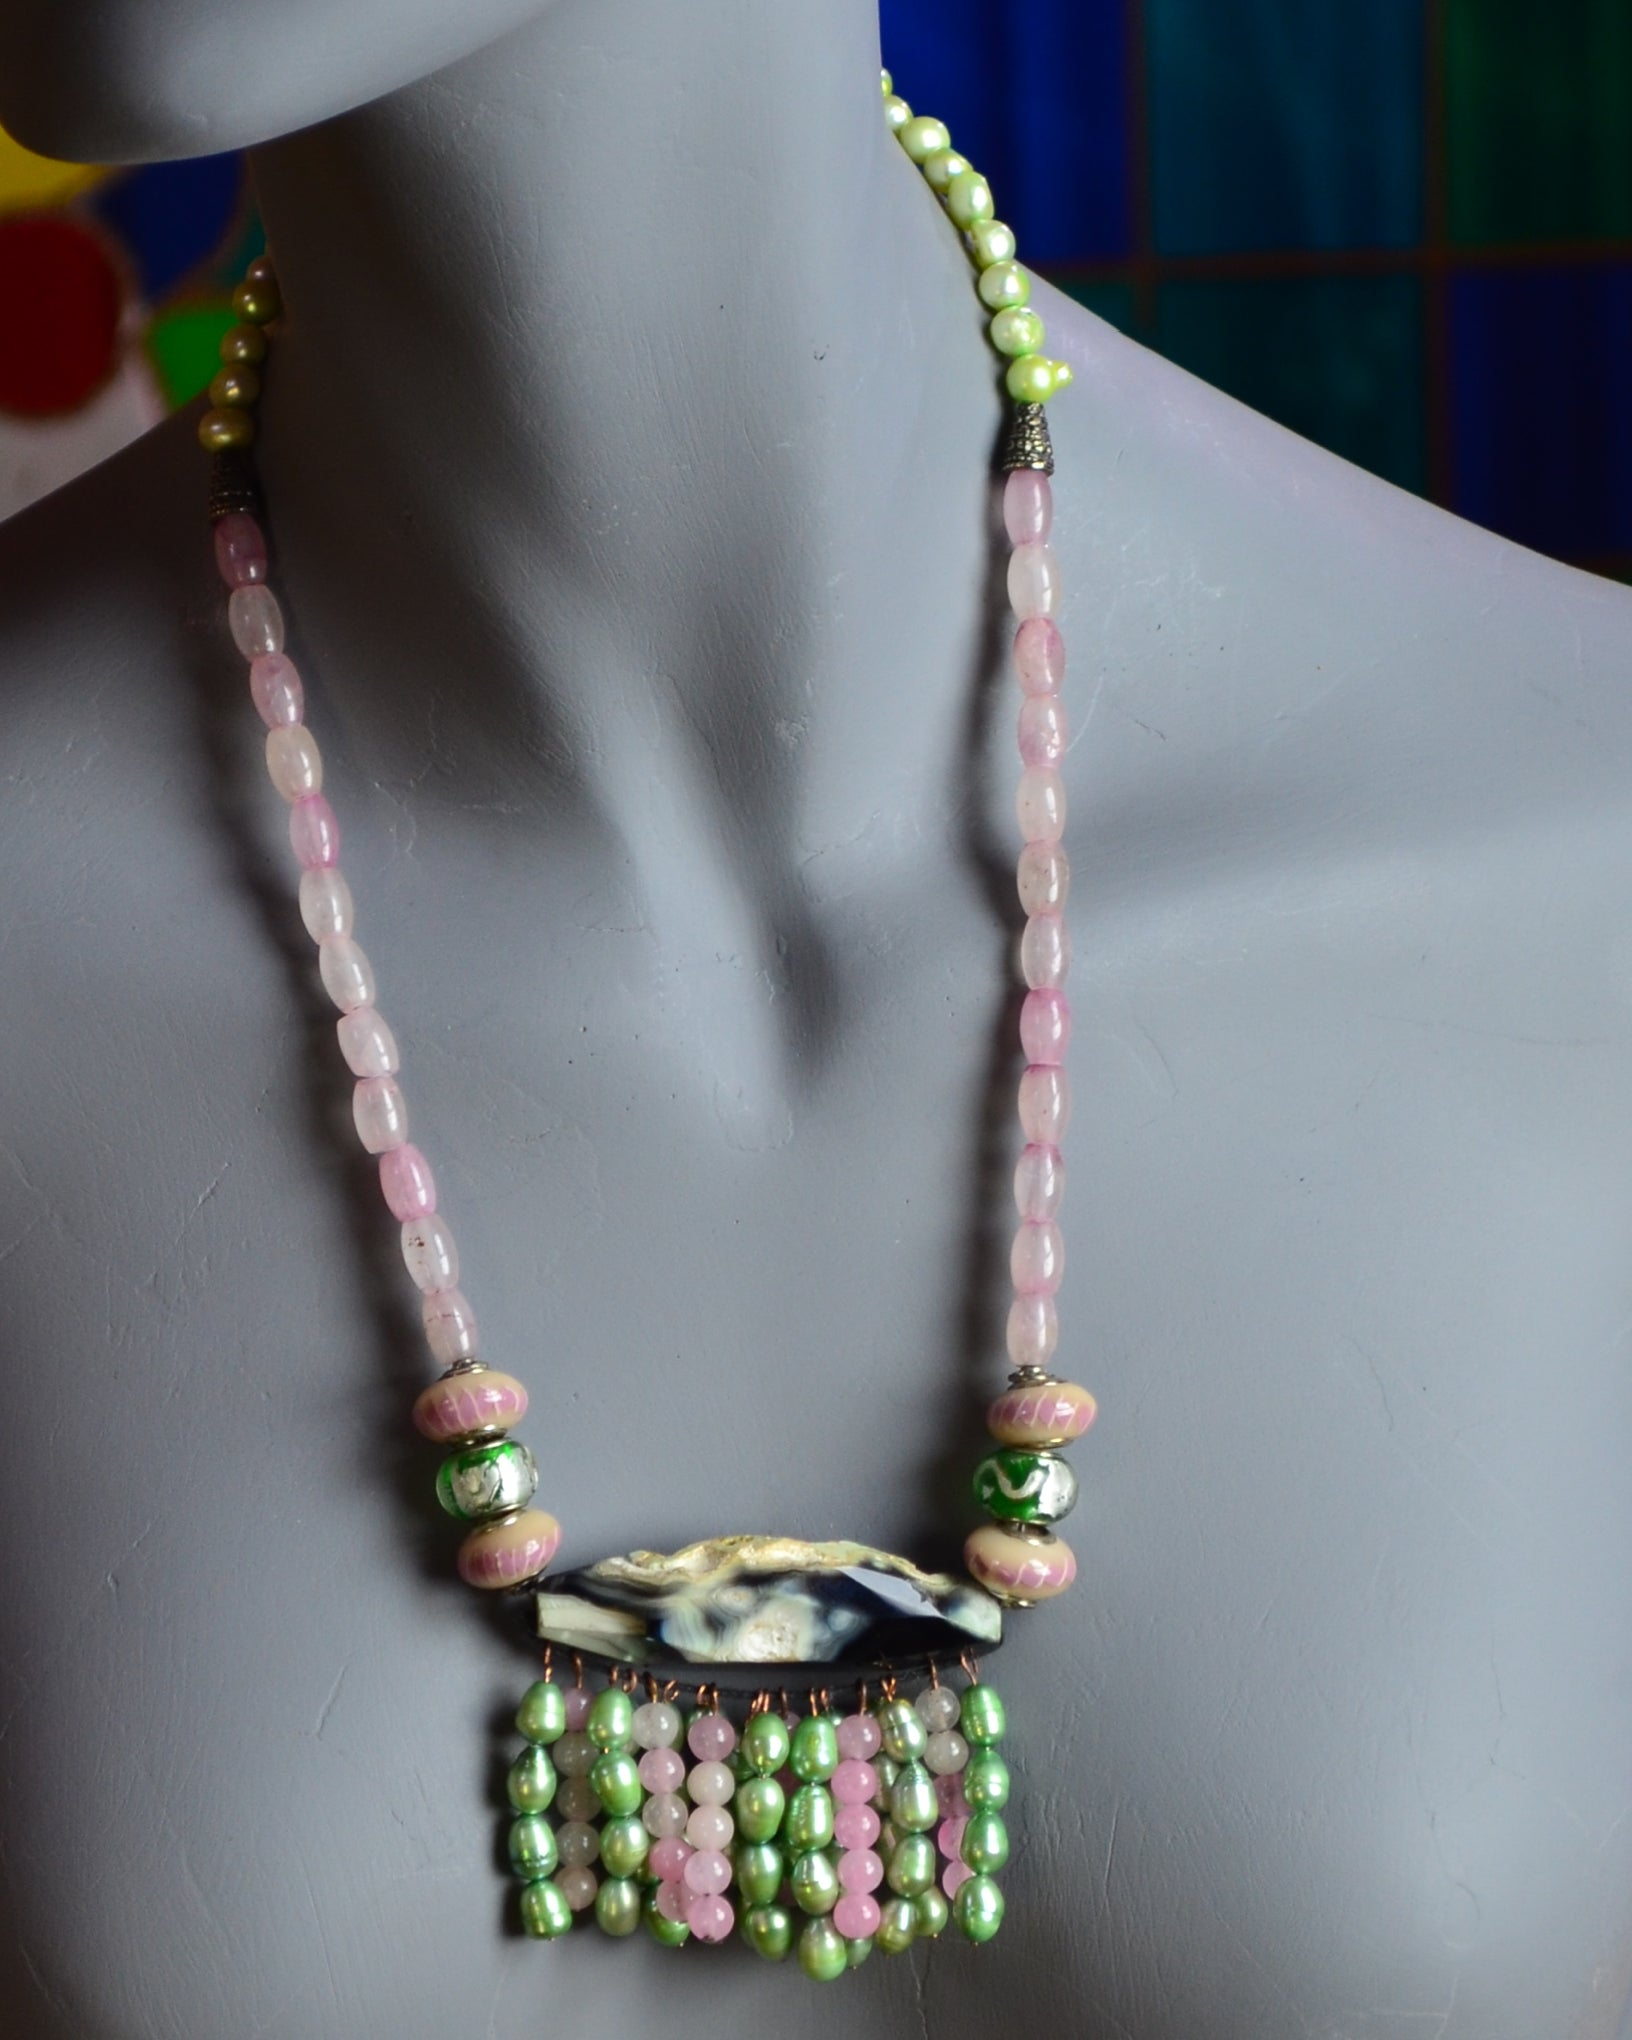 This necklace was inspired by the necklaces Afghani women wear, but instead of pearls, they garnish theirs with silver beads.